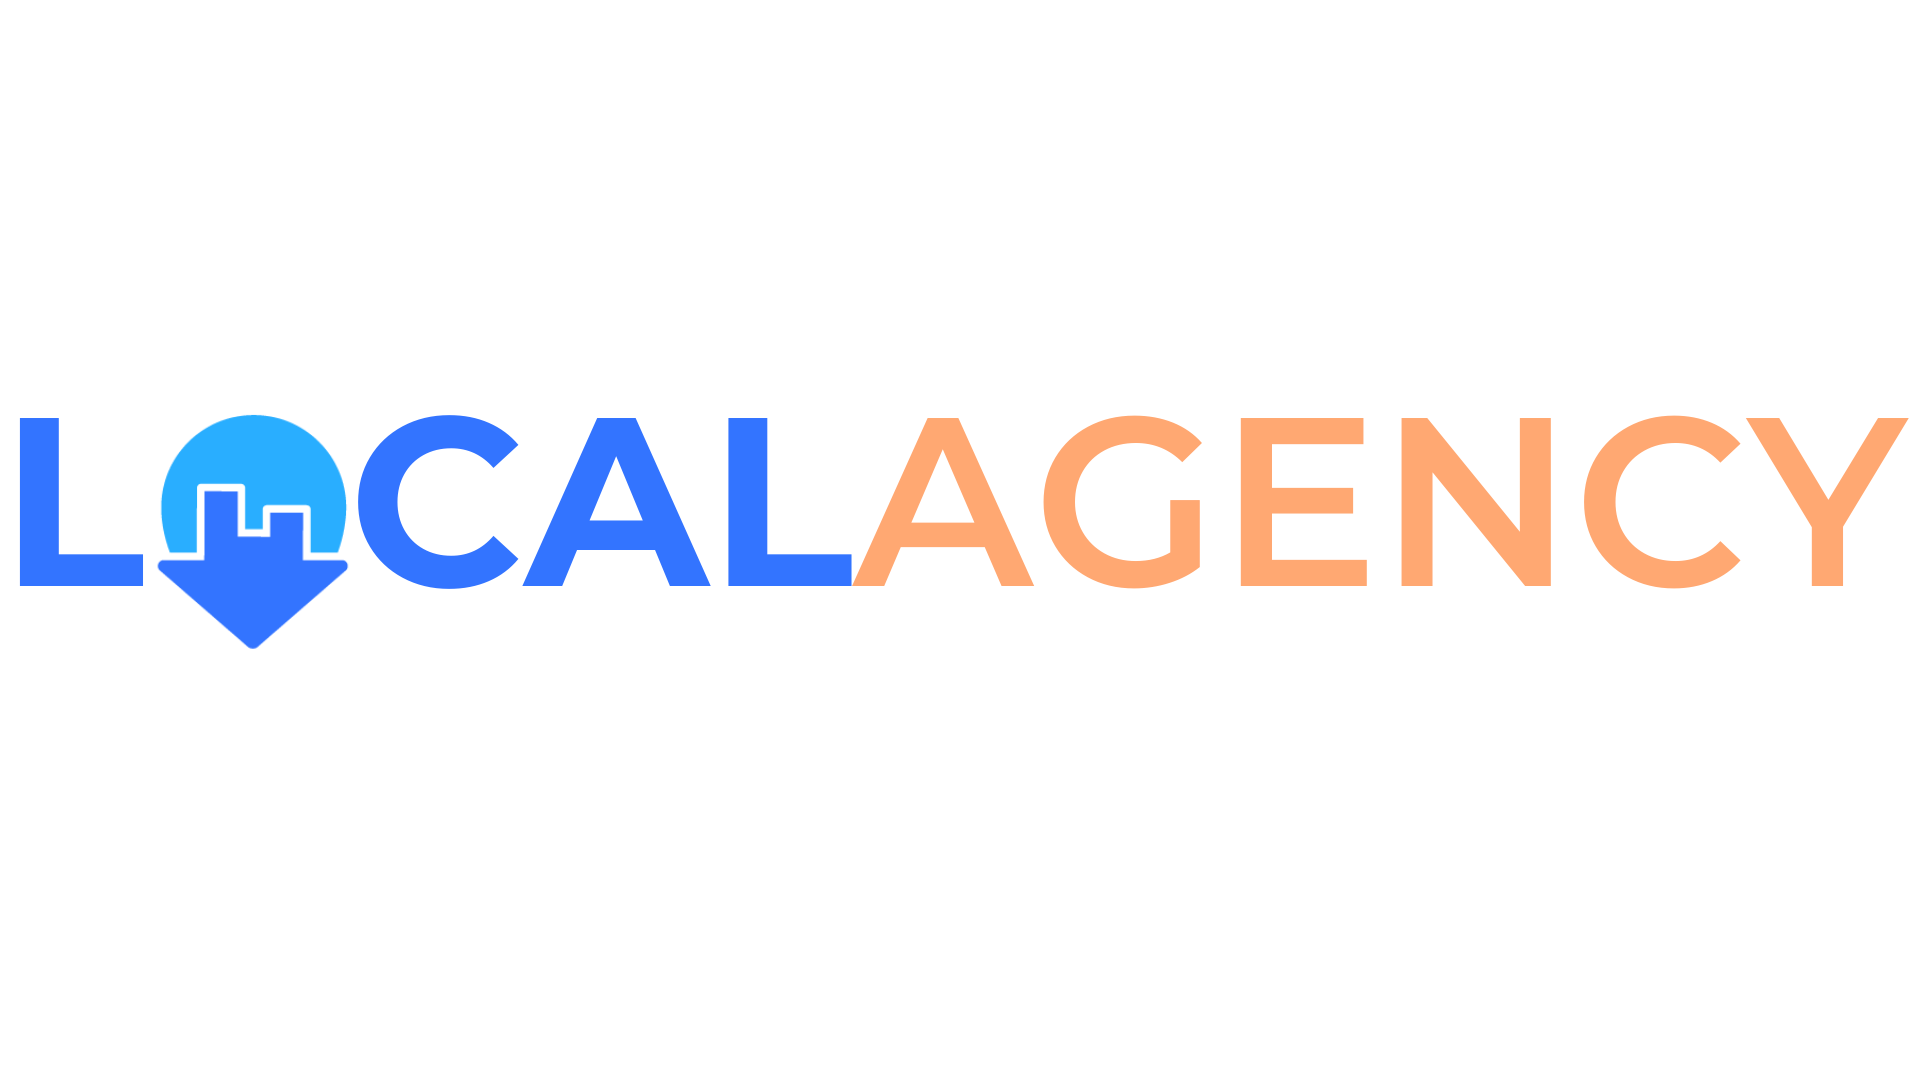 Localogy Live - LocalAgency Vodcast Podcast, Content Series